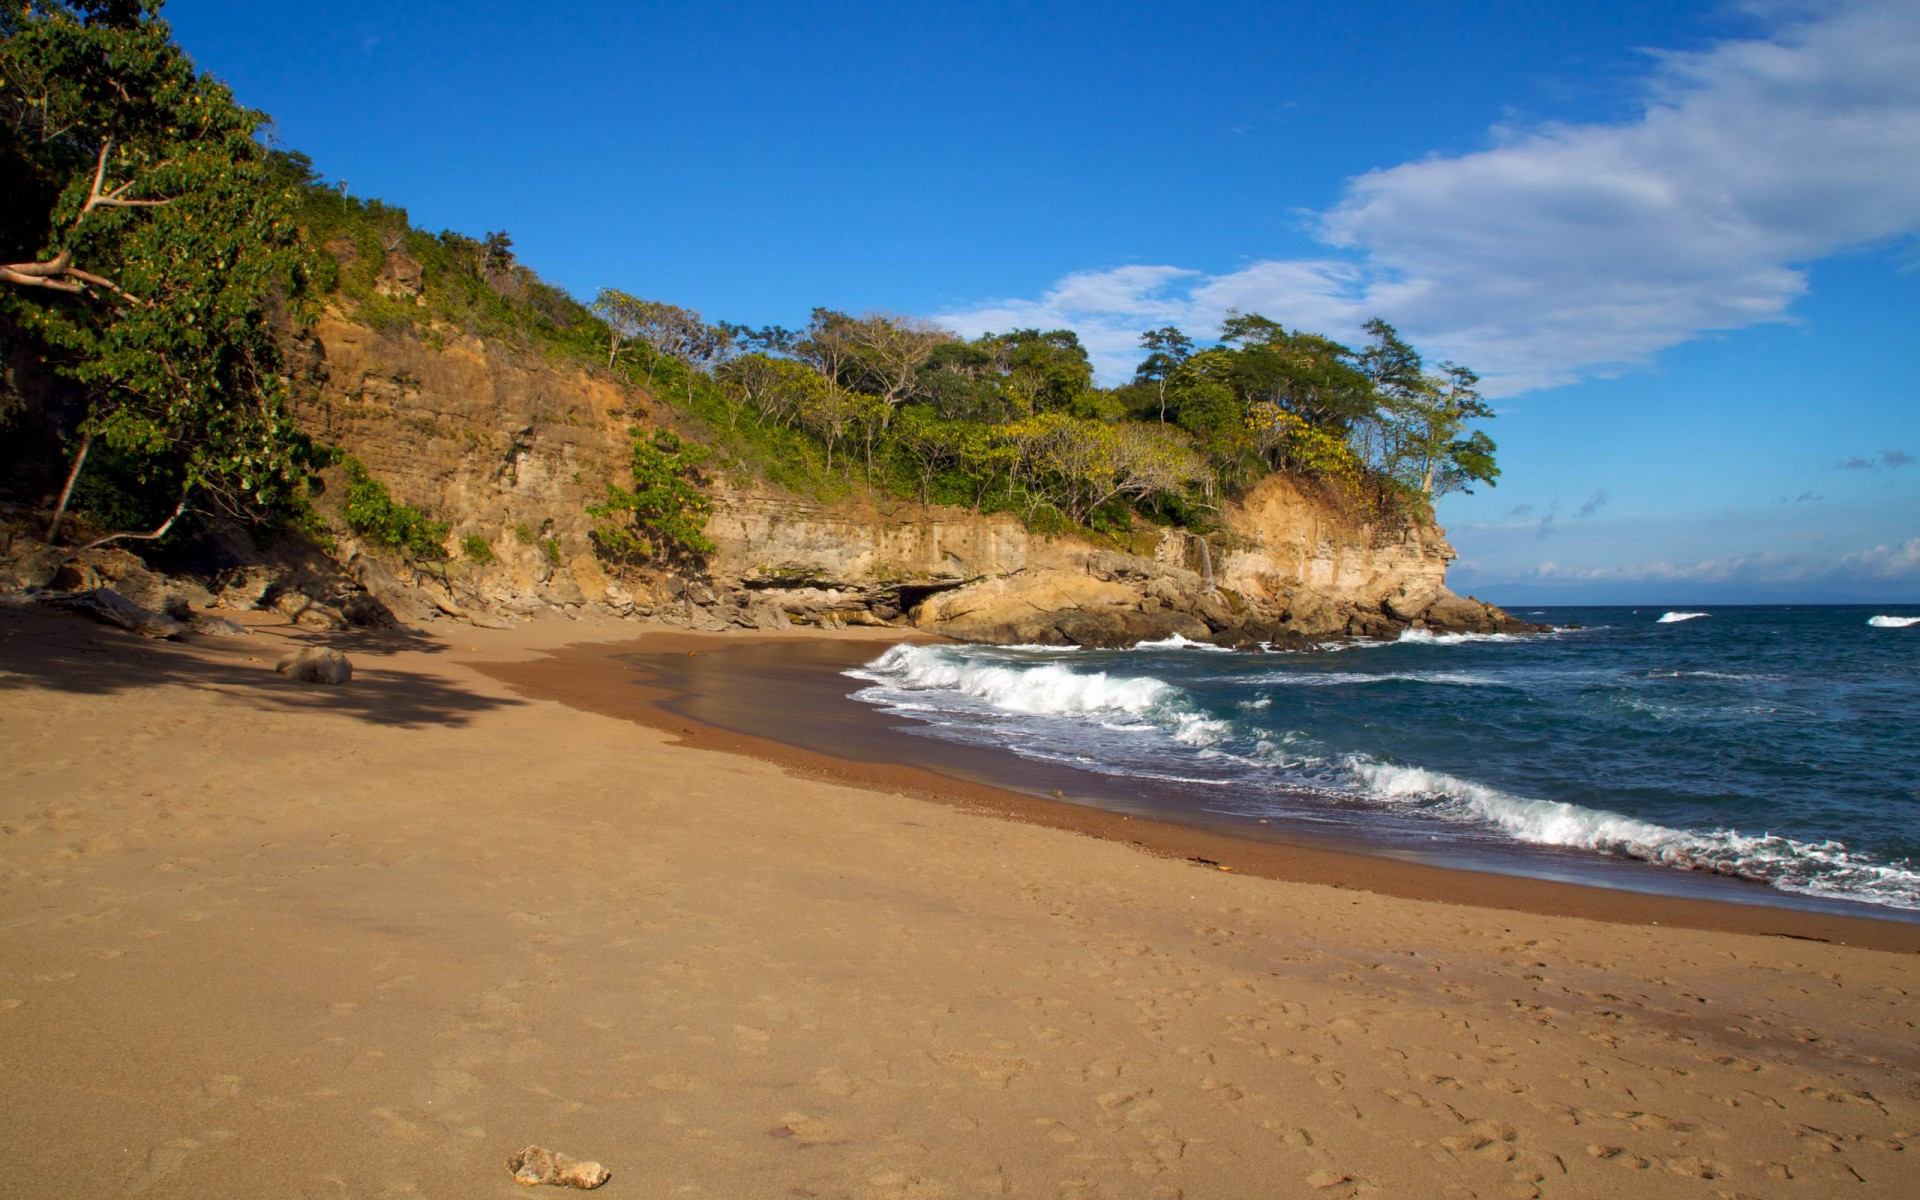 Image Ocean Cliff Trees Costa Rica Wallpapers And Stock Photos